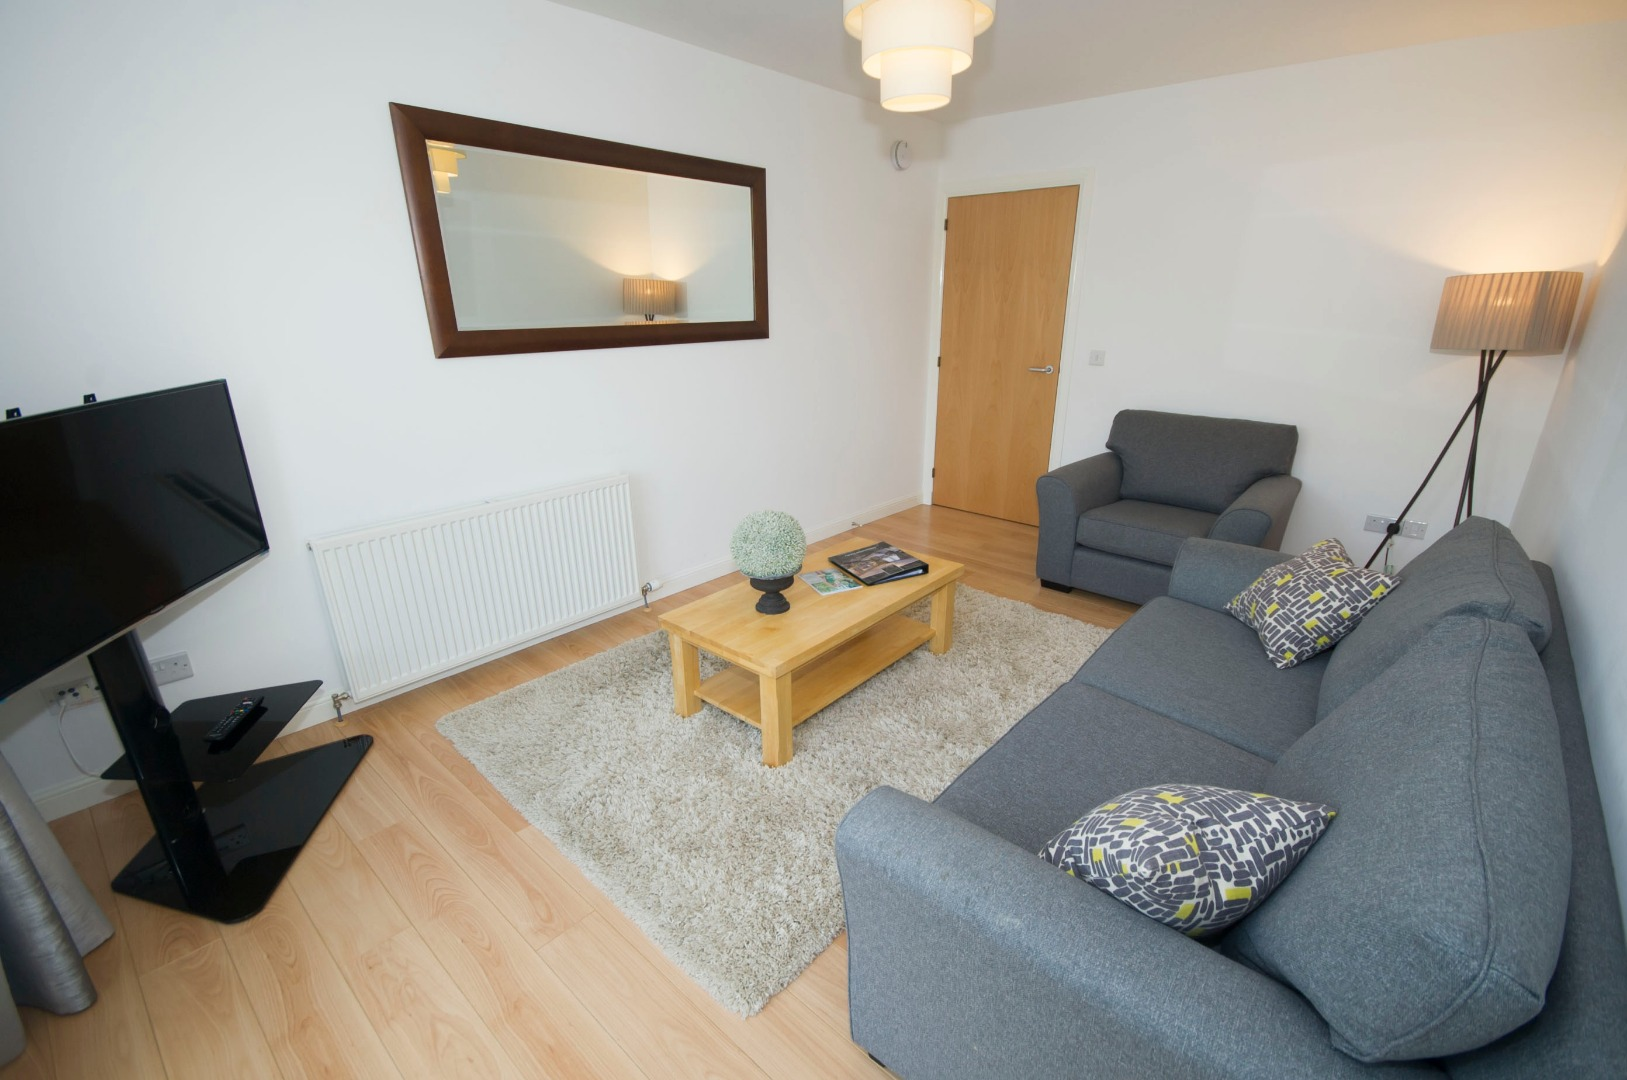 Aberdeen-Corporate-Luxury-Accommodation---Portland-Street-Apartments-Near-Union-Square-Shopping-Centre---Urban-Stay-5